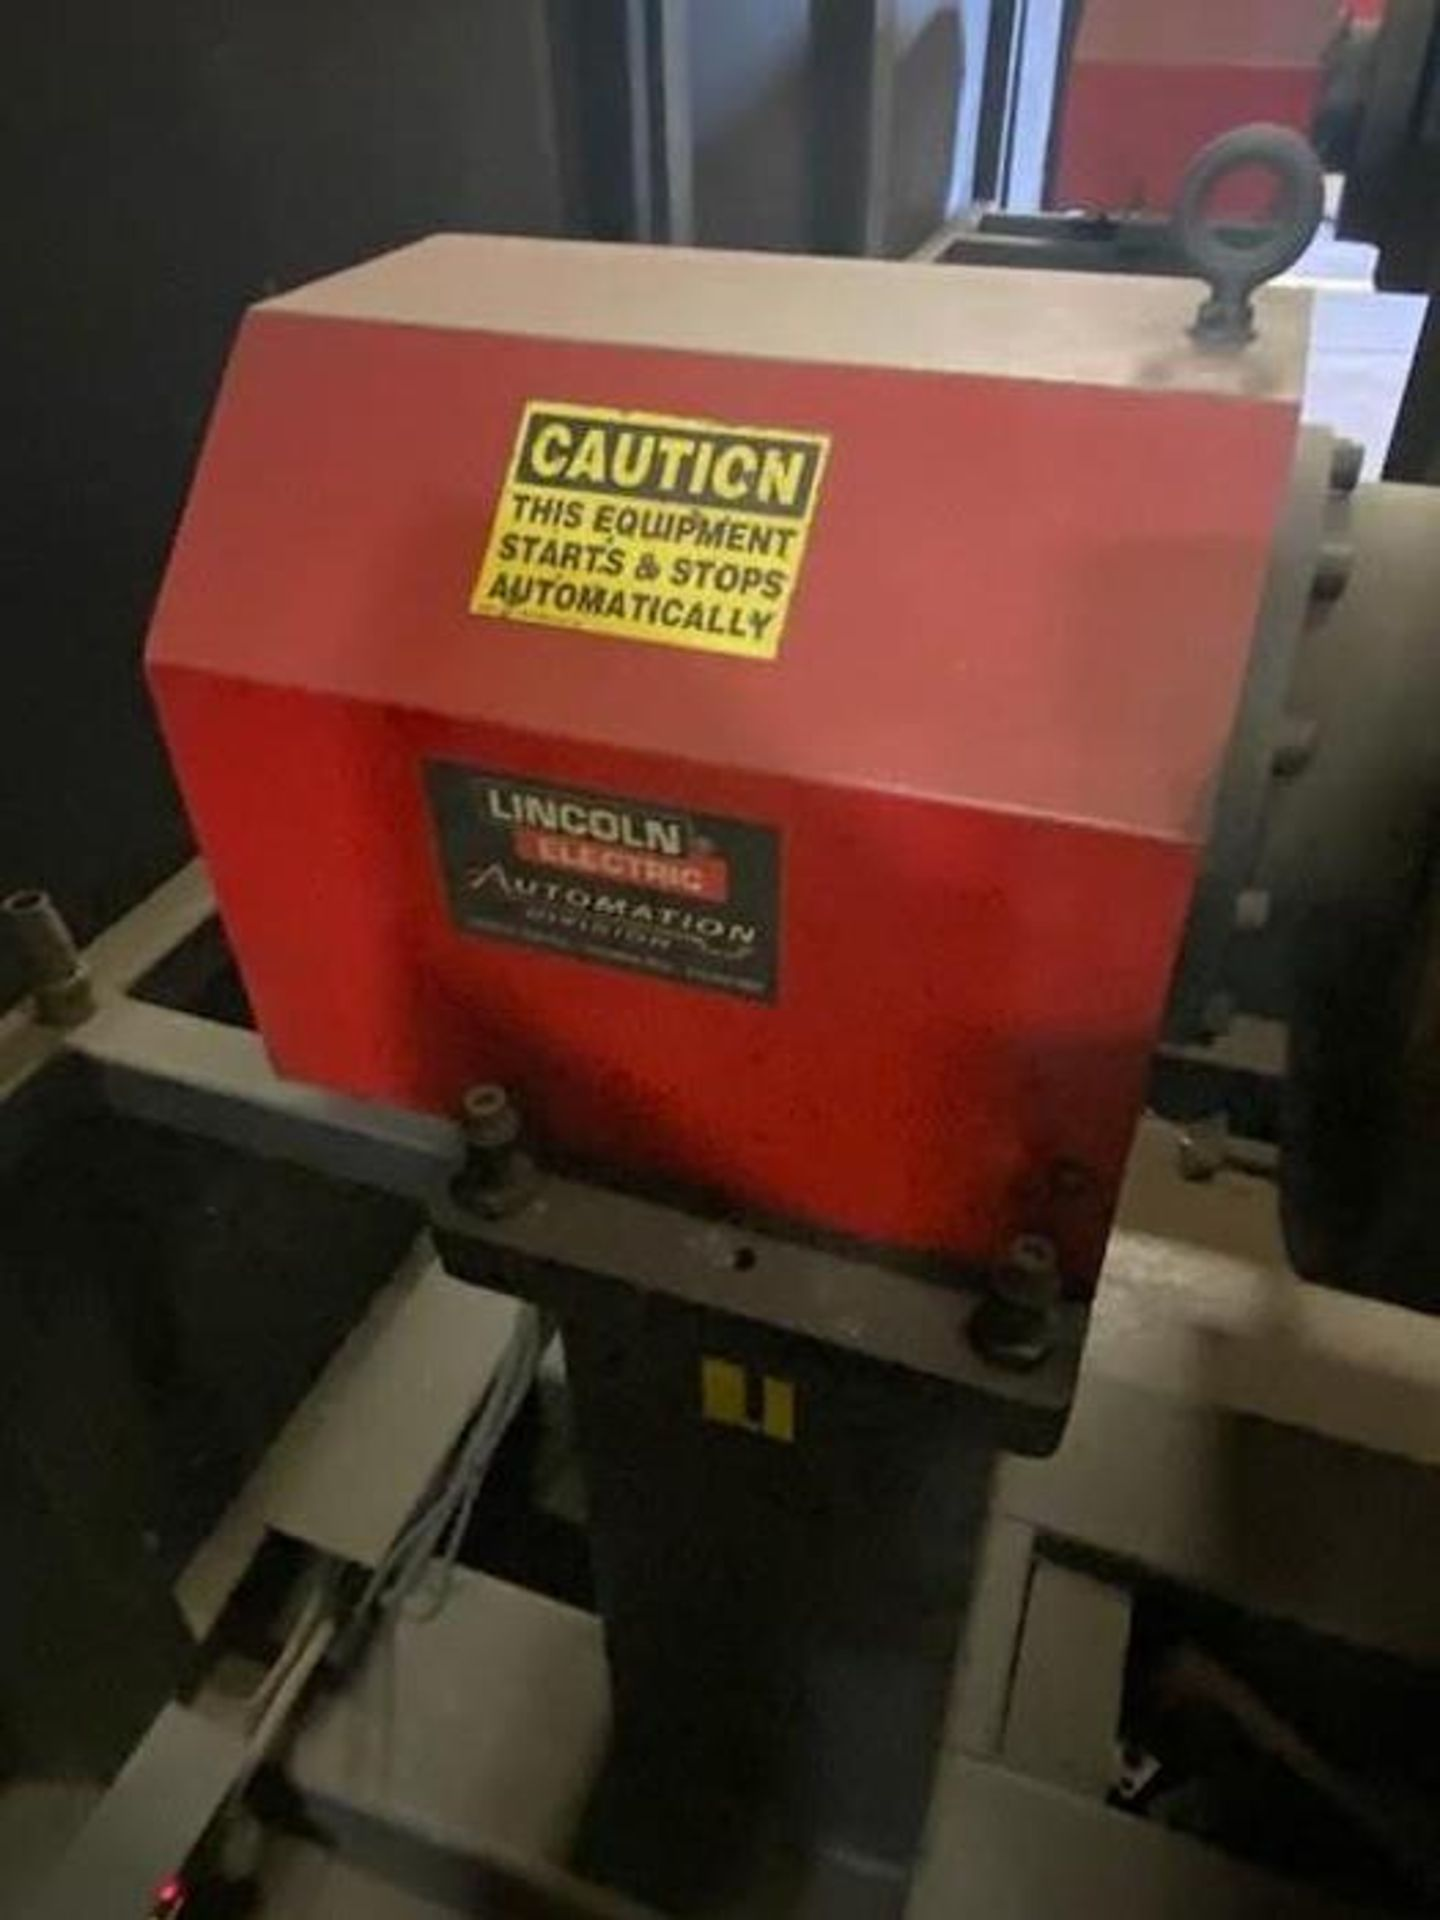 FANUC/LINCOLN DUAL TRUNION WELD CELL, FANUC ROBOT ARCMATE 120iB/10L WITH R-J3iB CONTROL - Image 7 of 11